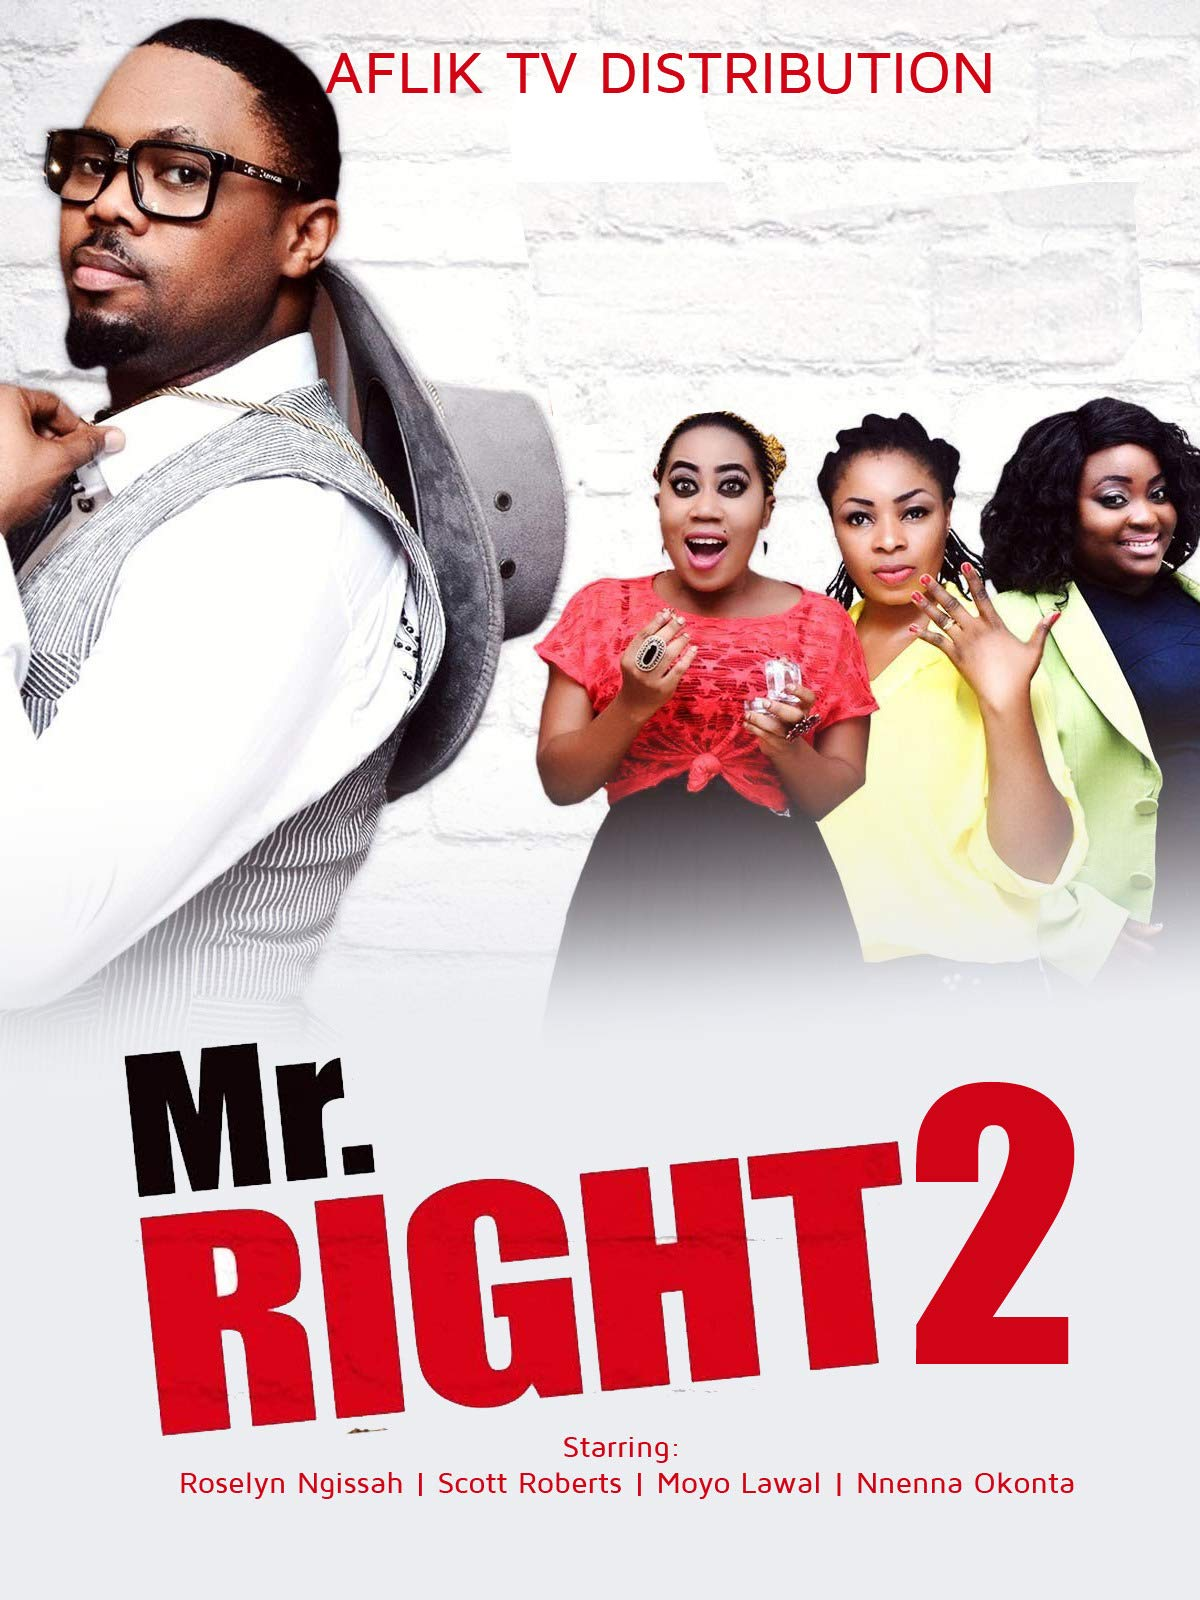 Behind Mr Right 2